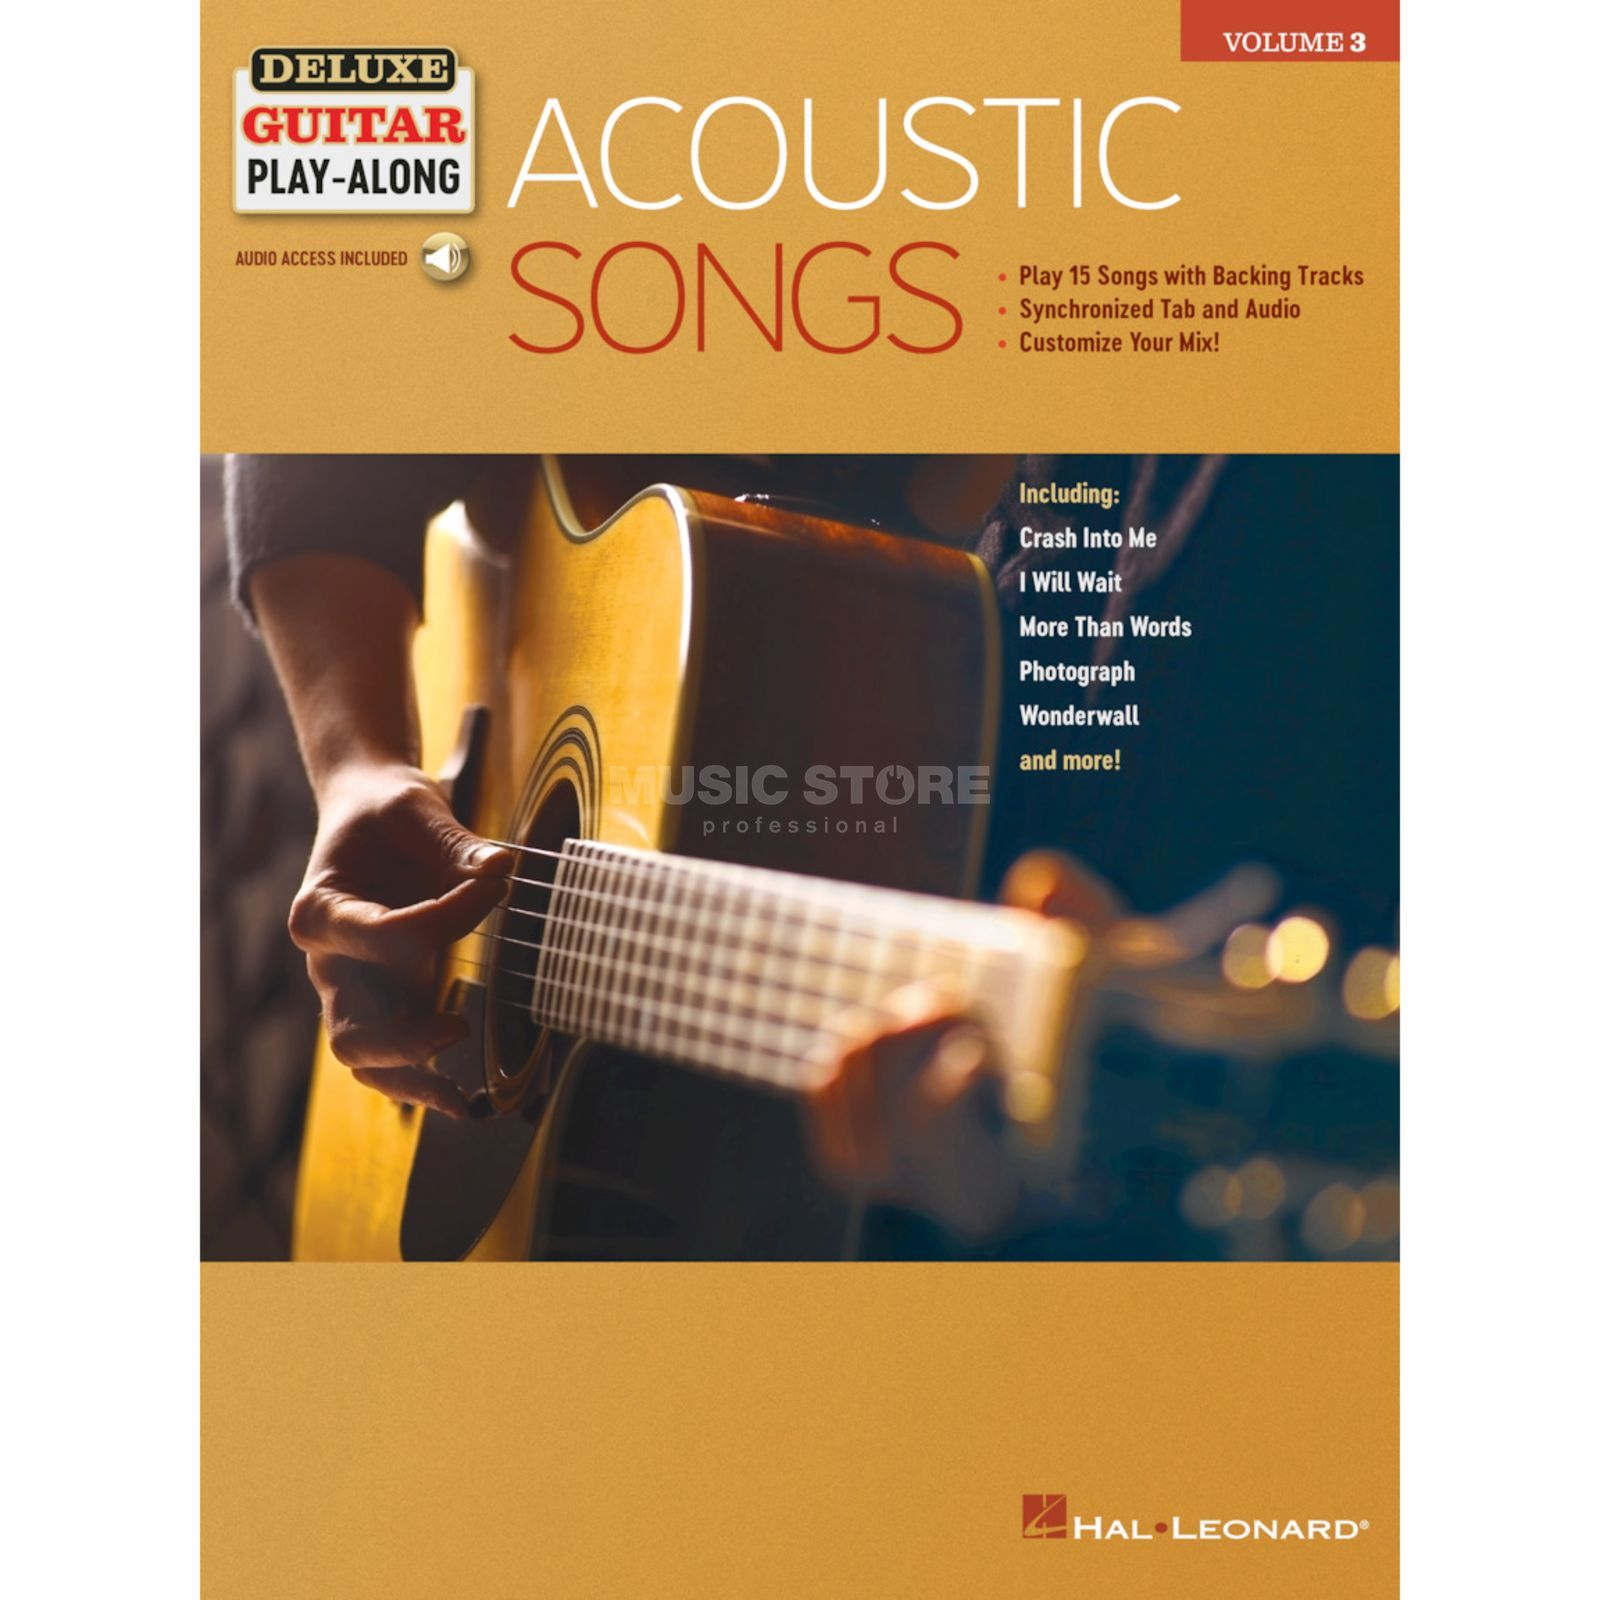 Hal Leonard Deluxe Guitar Play-Along: Acoustic Songs Product Image